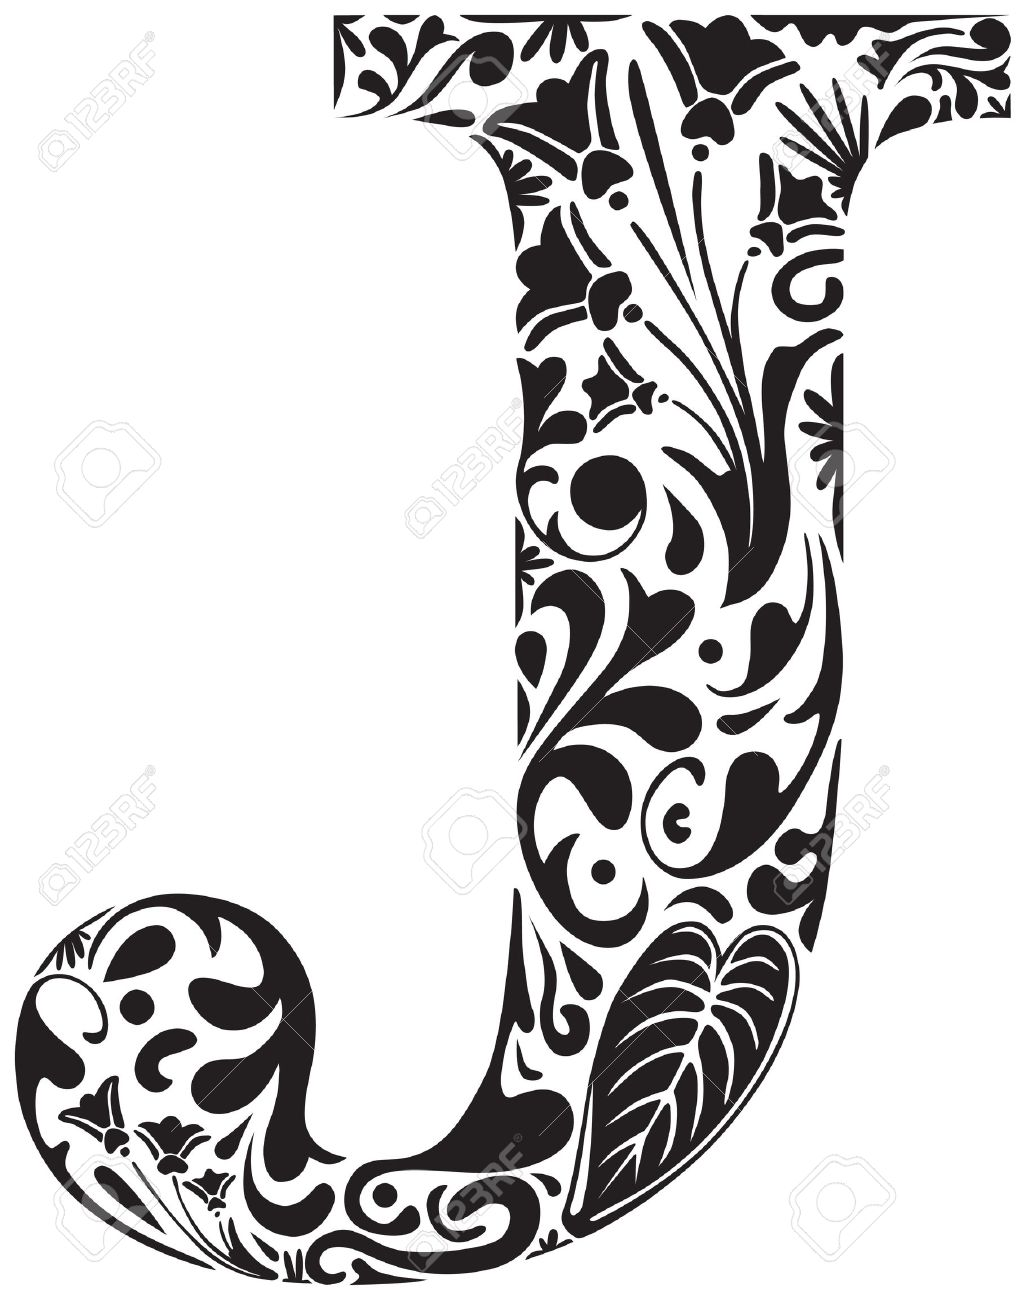 Floral Initial Capital Letter J Royalty Free Cliparts, Vectors